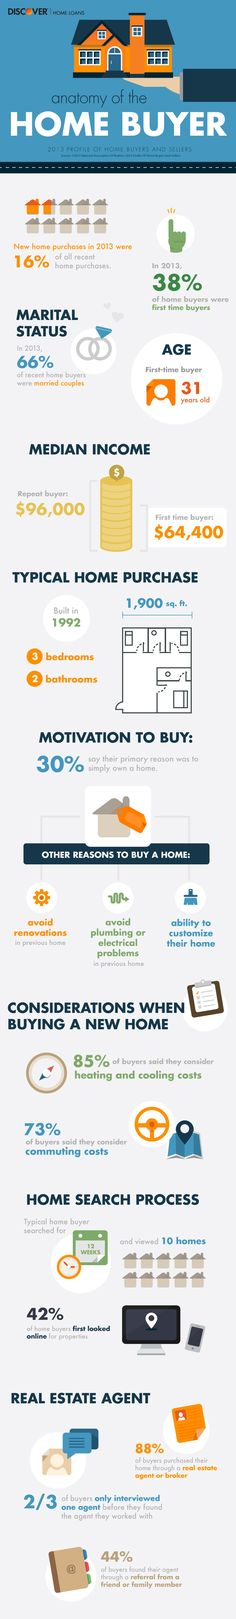 First Time Home Buyer Infographic 2013 profile of home buyers and sellers #chicago